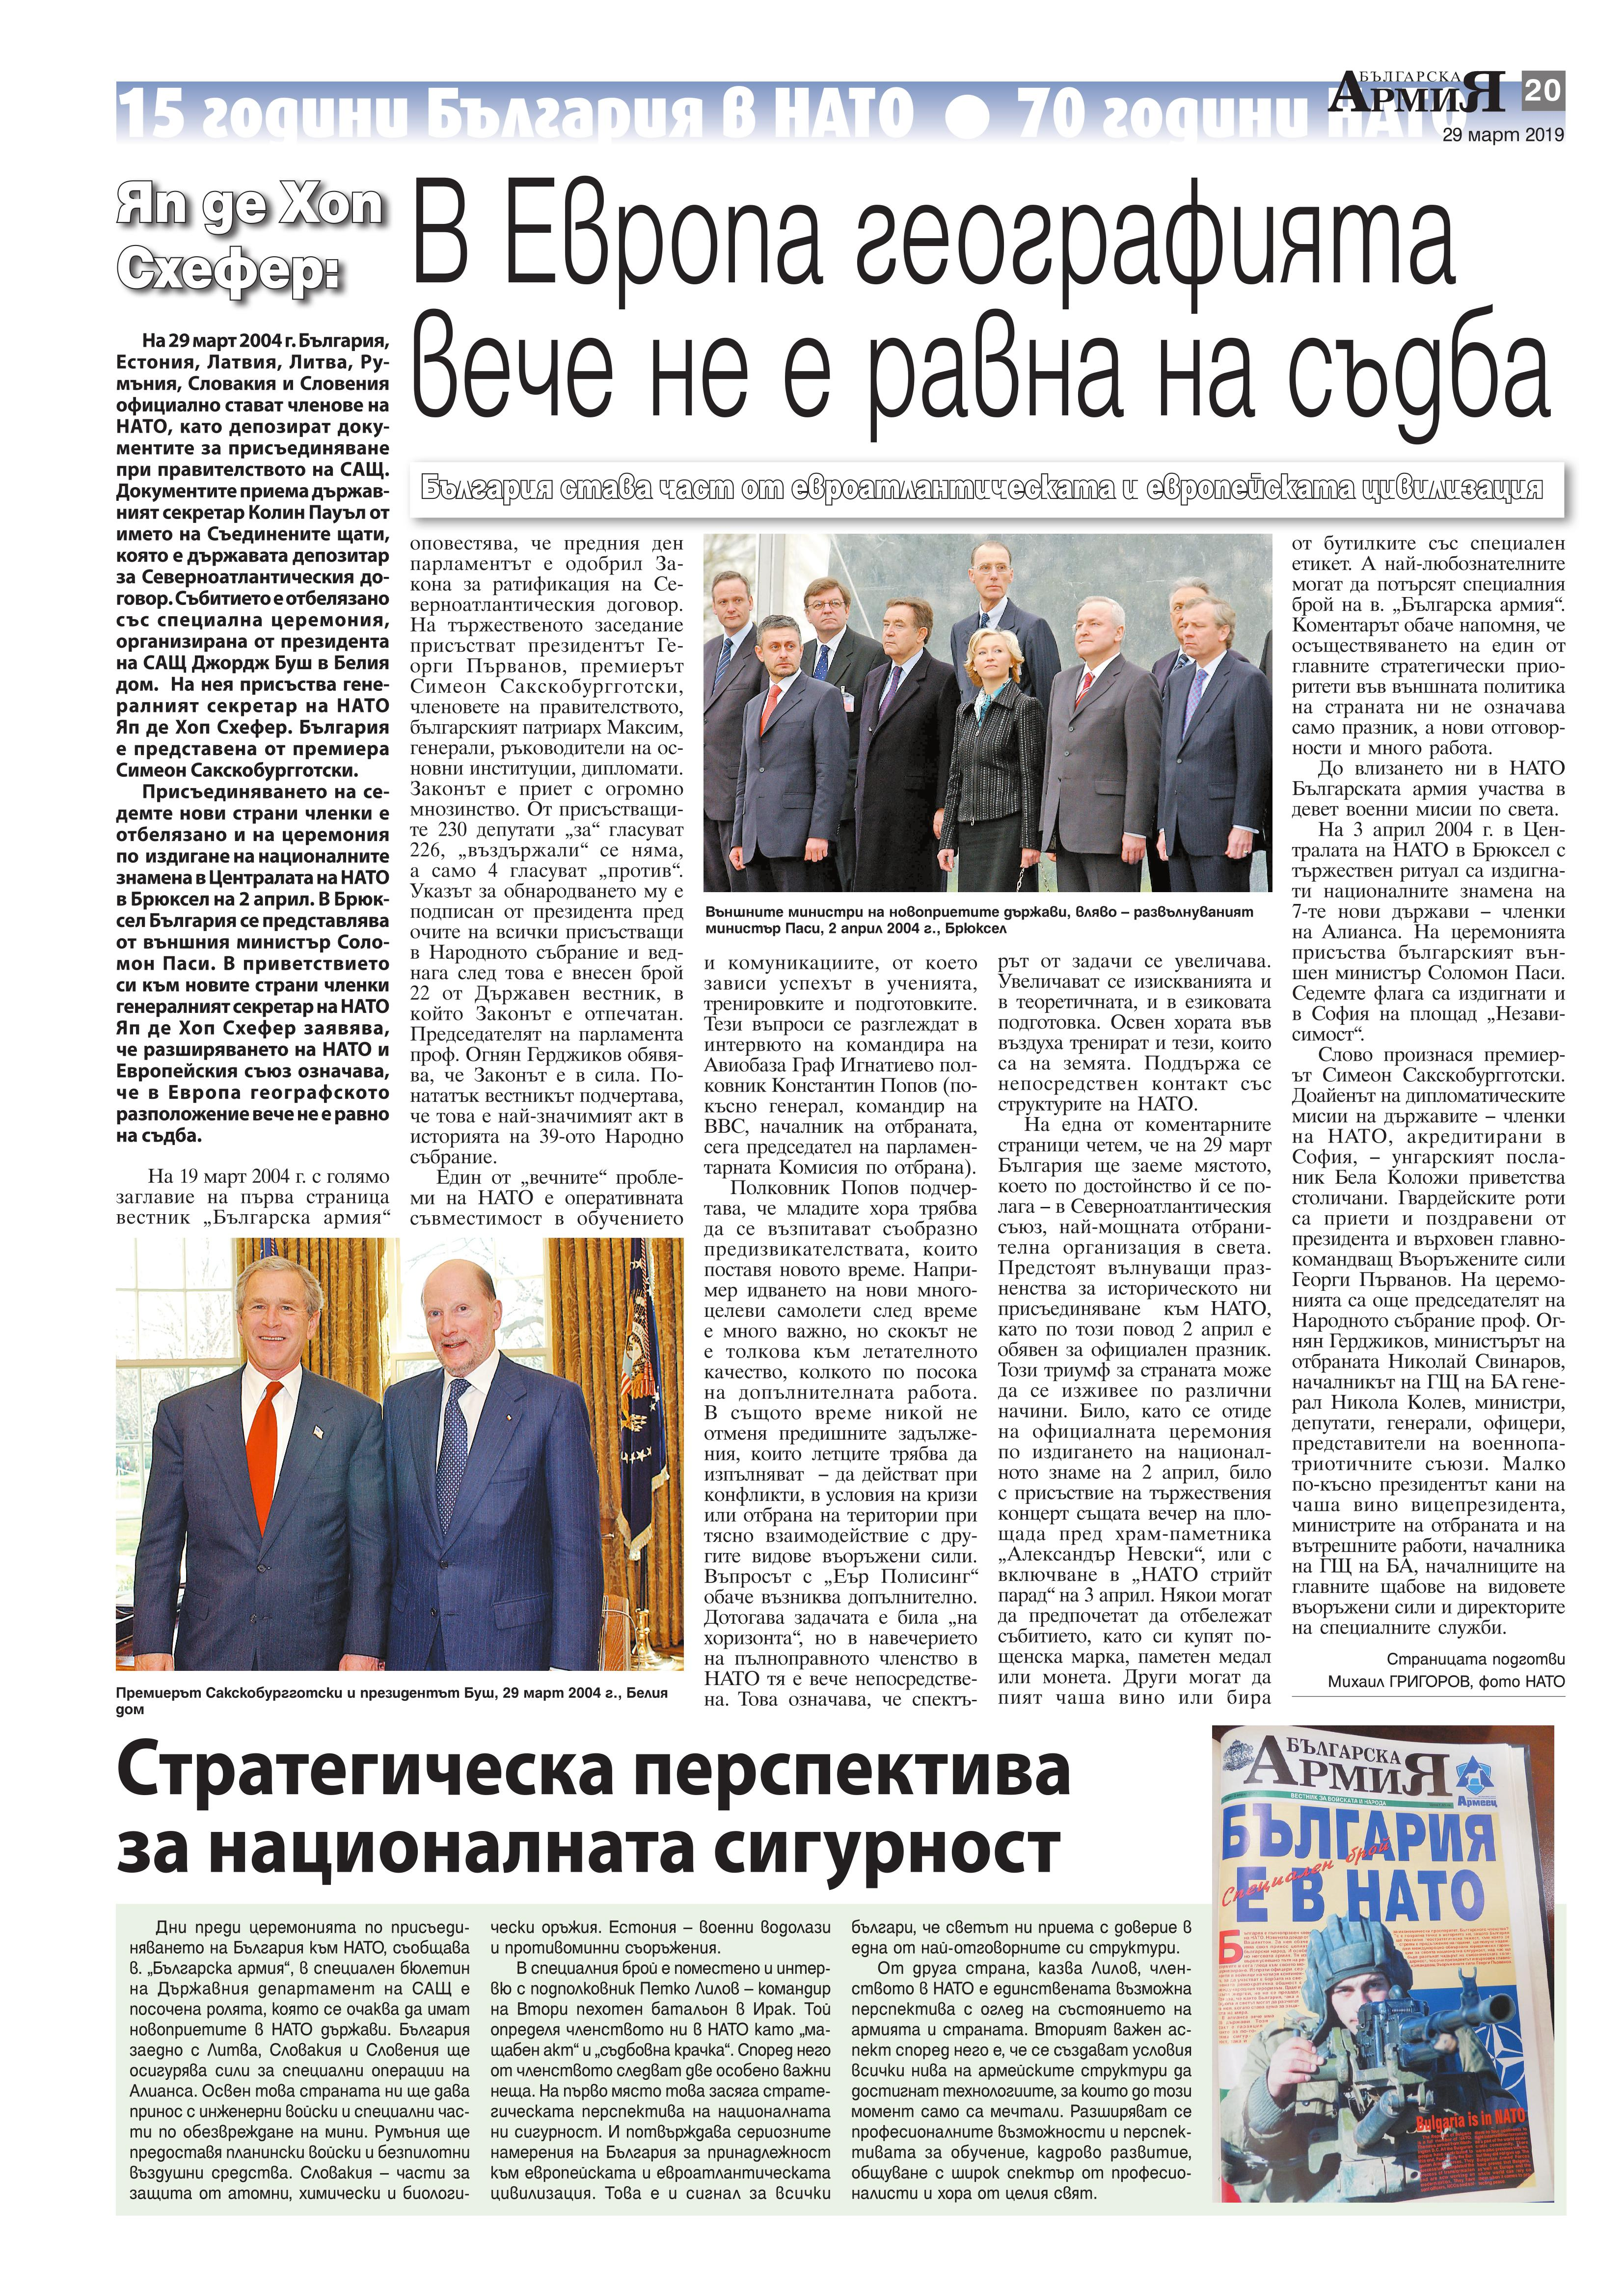 https://armymedia.bg/wp-content/uploads/2015/06/20.page1_-89.jpg